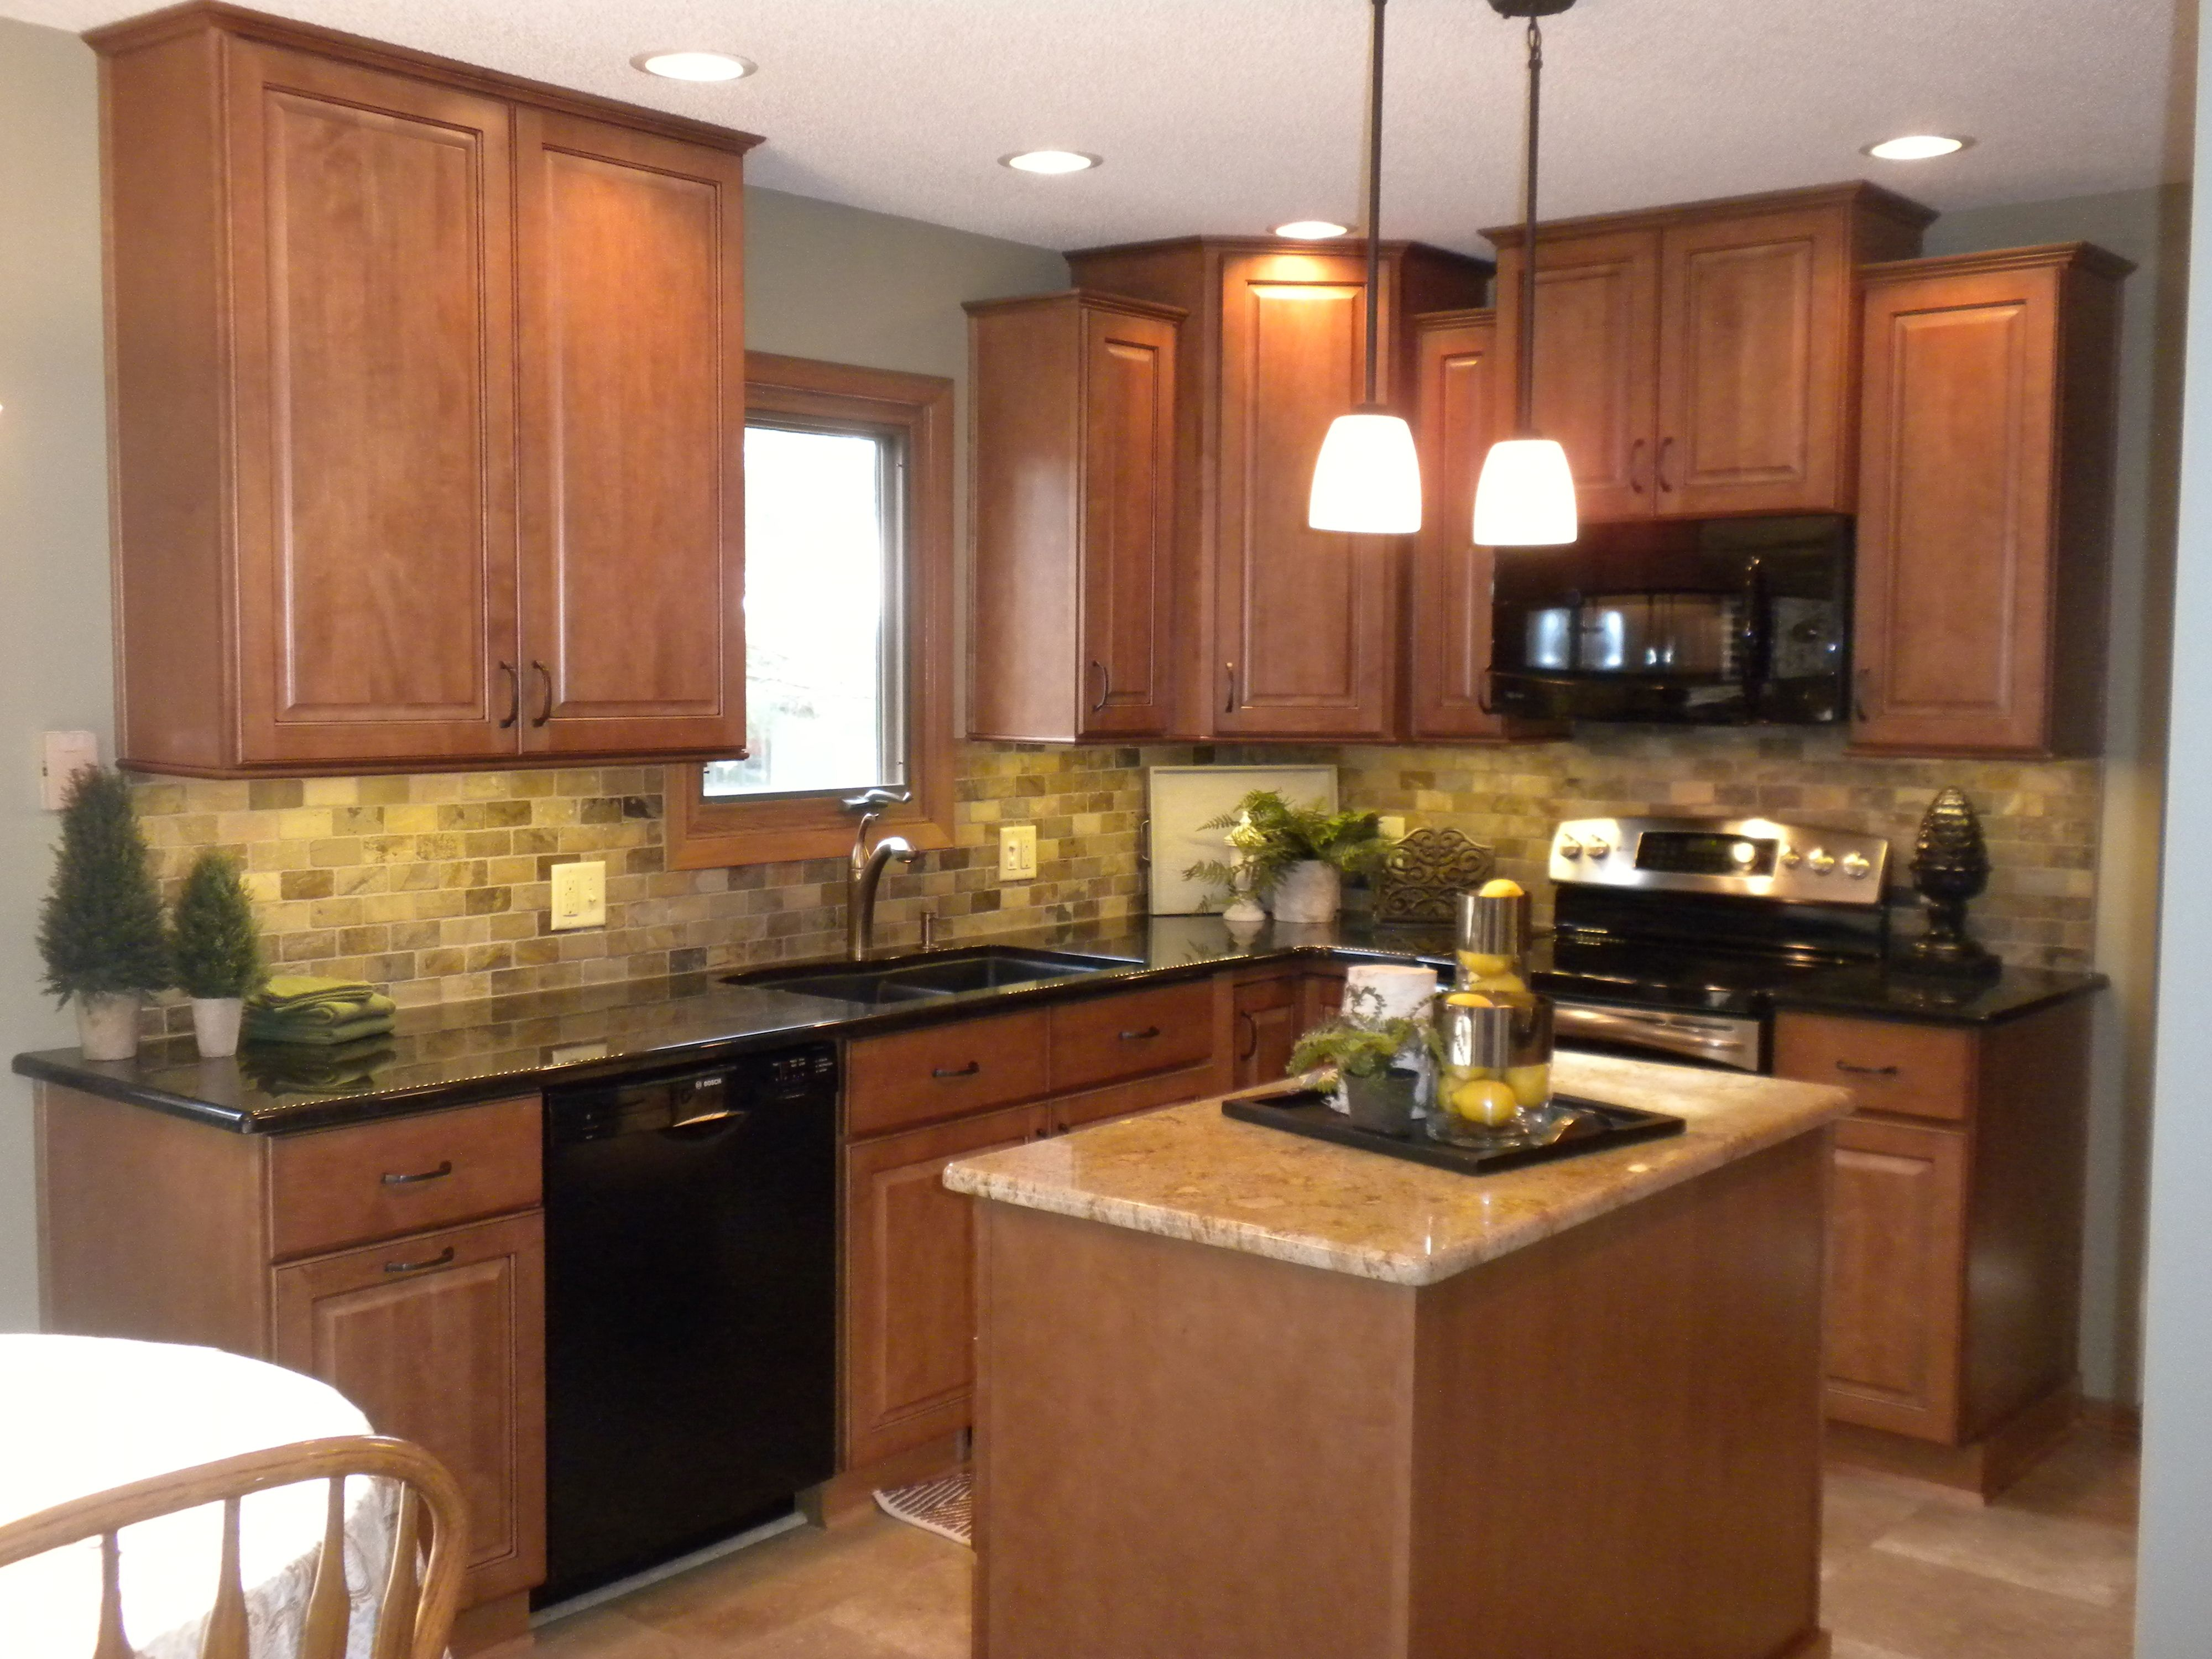 pictures of cambria countertops with honey oak cabinets | Project ...